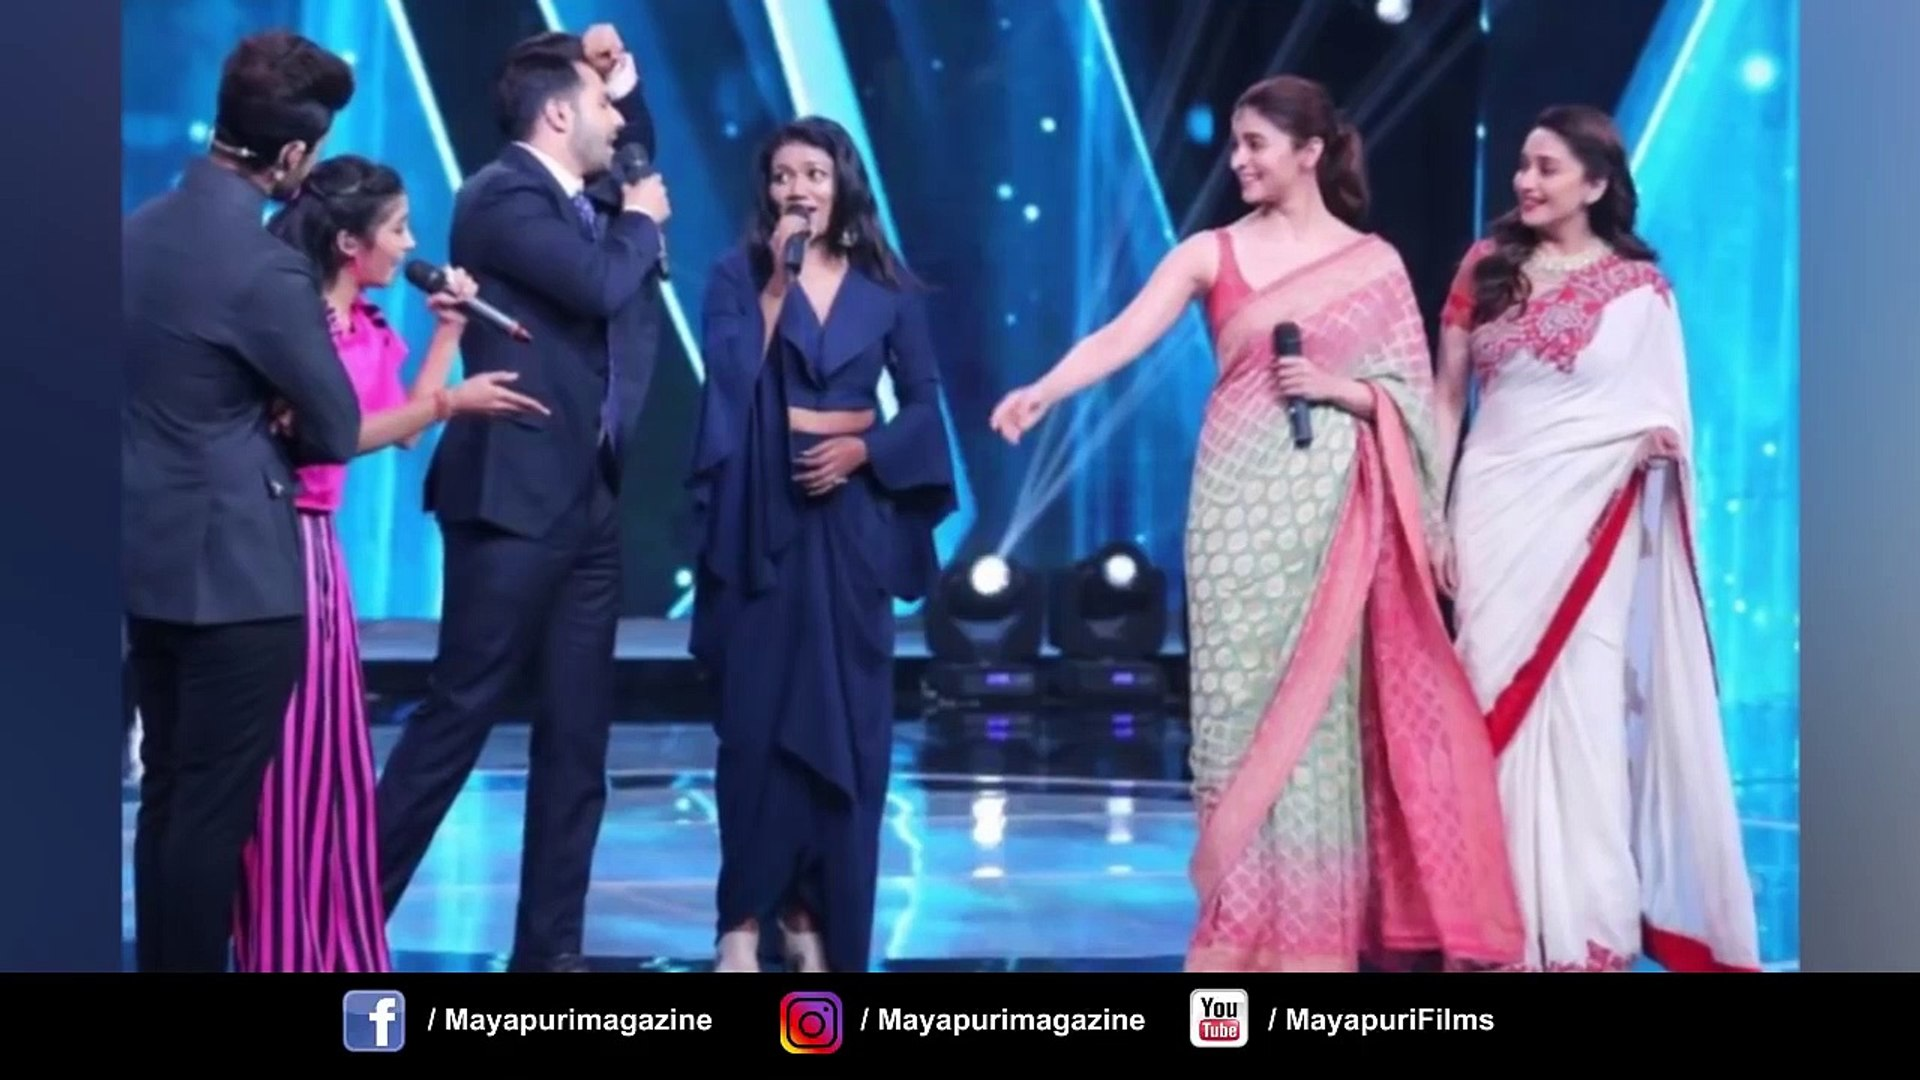 Latest Hindi Entertainment News From Bollywood - Mouni Roy - 20 April 2019 - 07-00AM